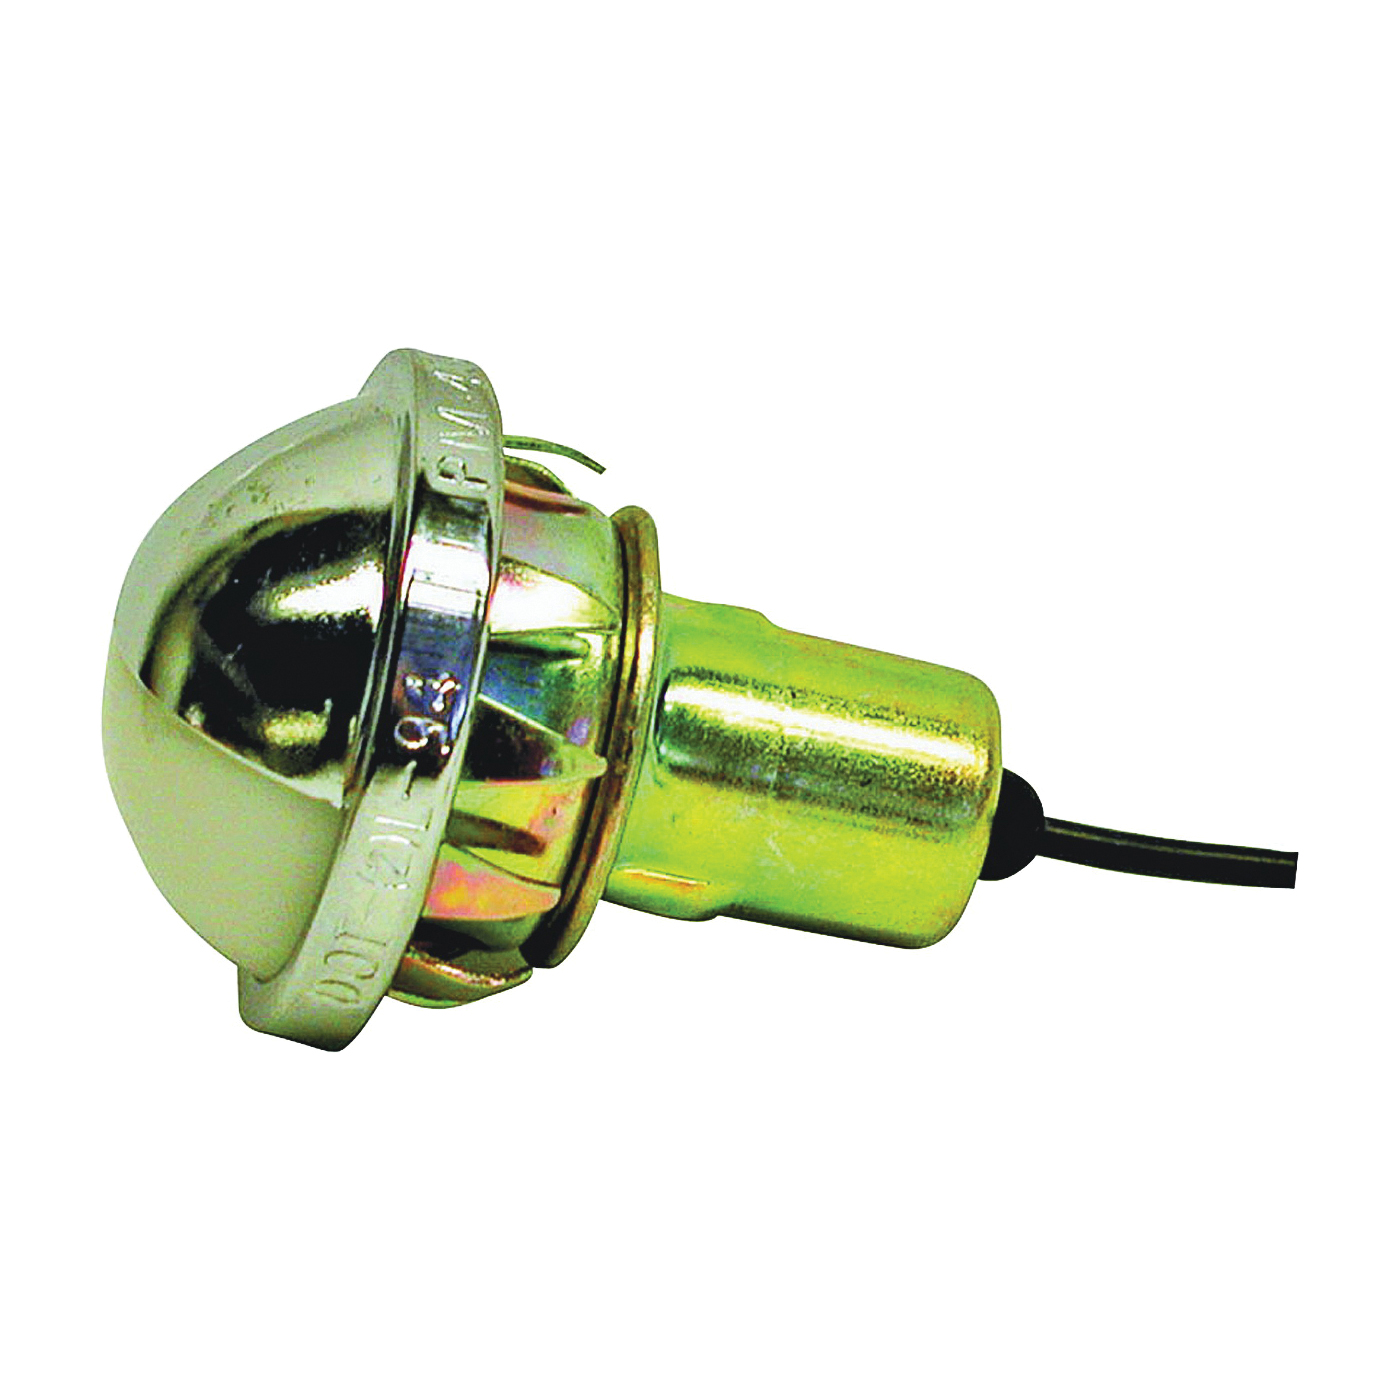 Picture of PM V438 Light, Incandescent Lamp, Clear Lamp